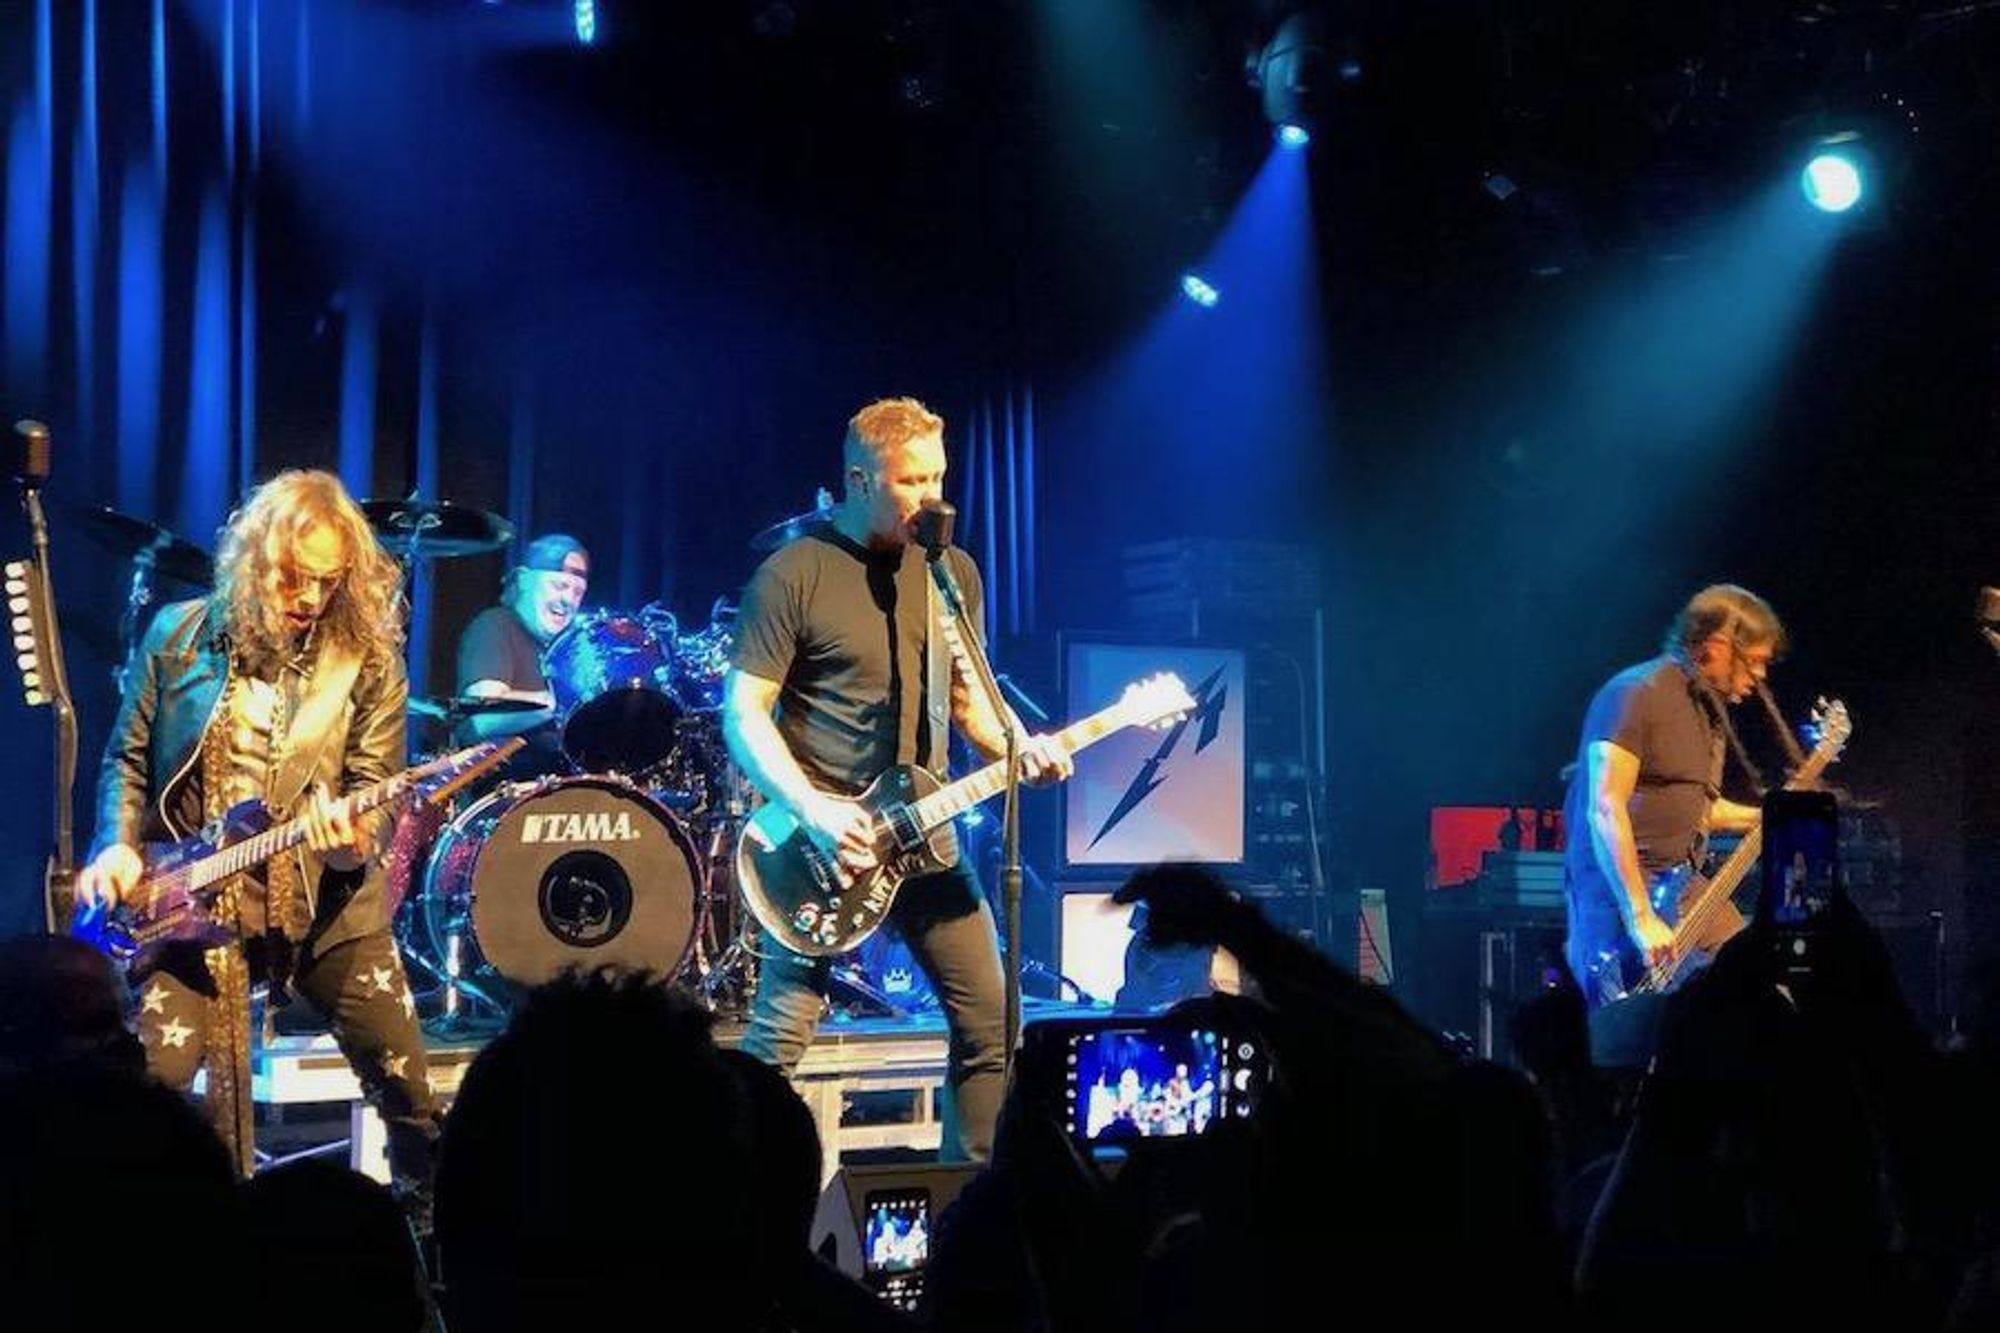 Metallica sells out surprise show with $19.81 tix + more good news around the Bay Area